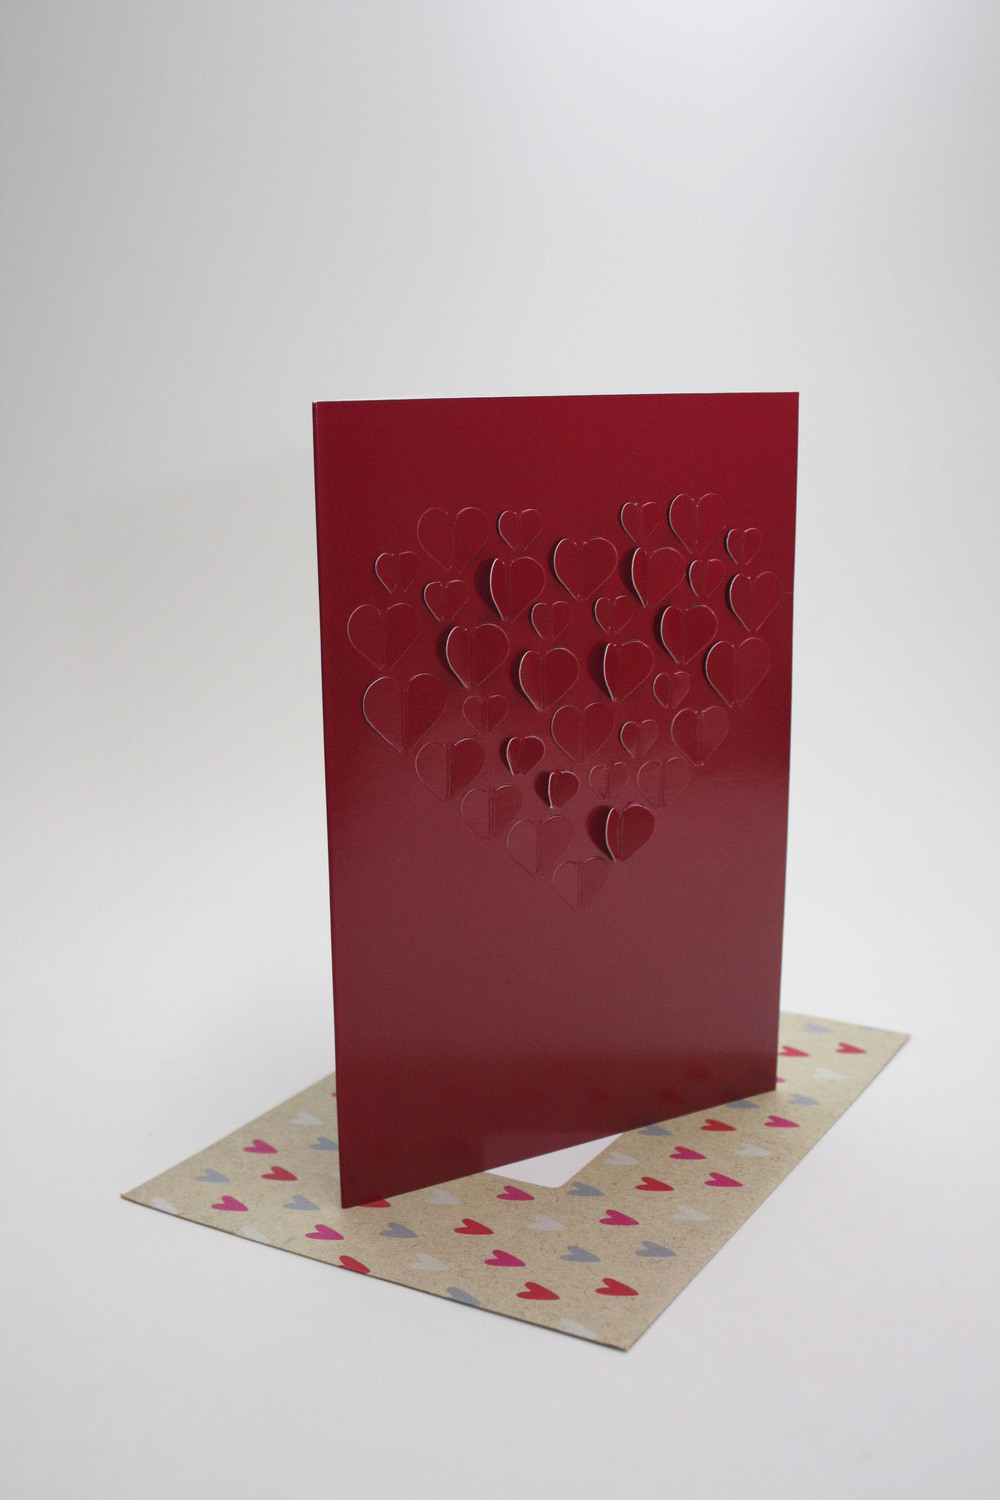 24_3D_GreetingsCard_Design_M&S..jpg